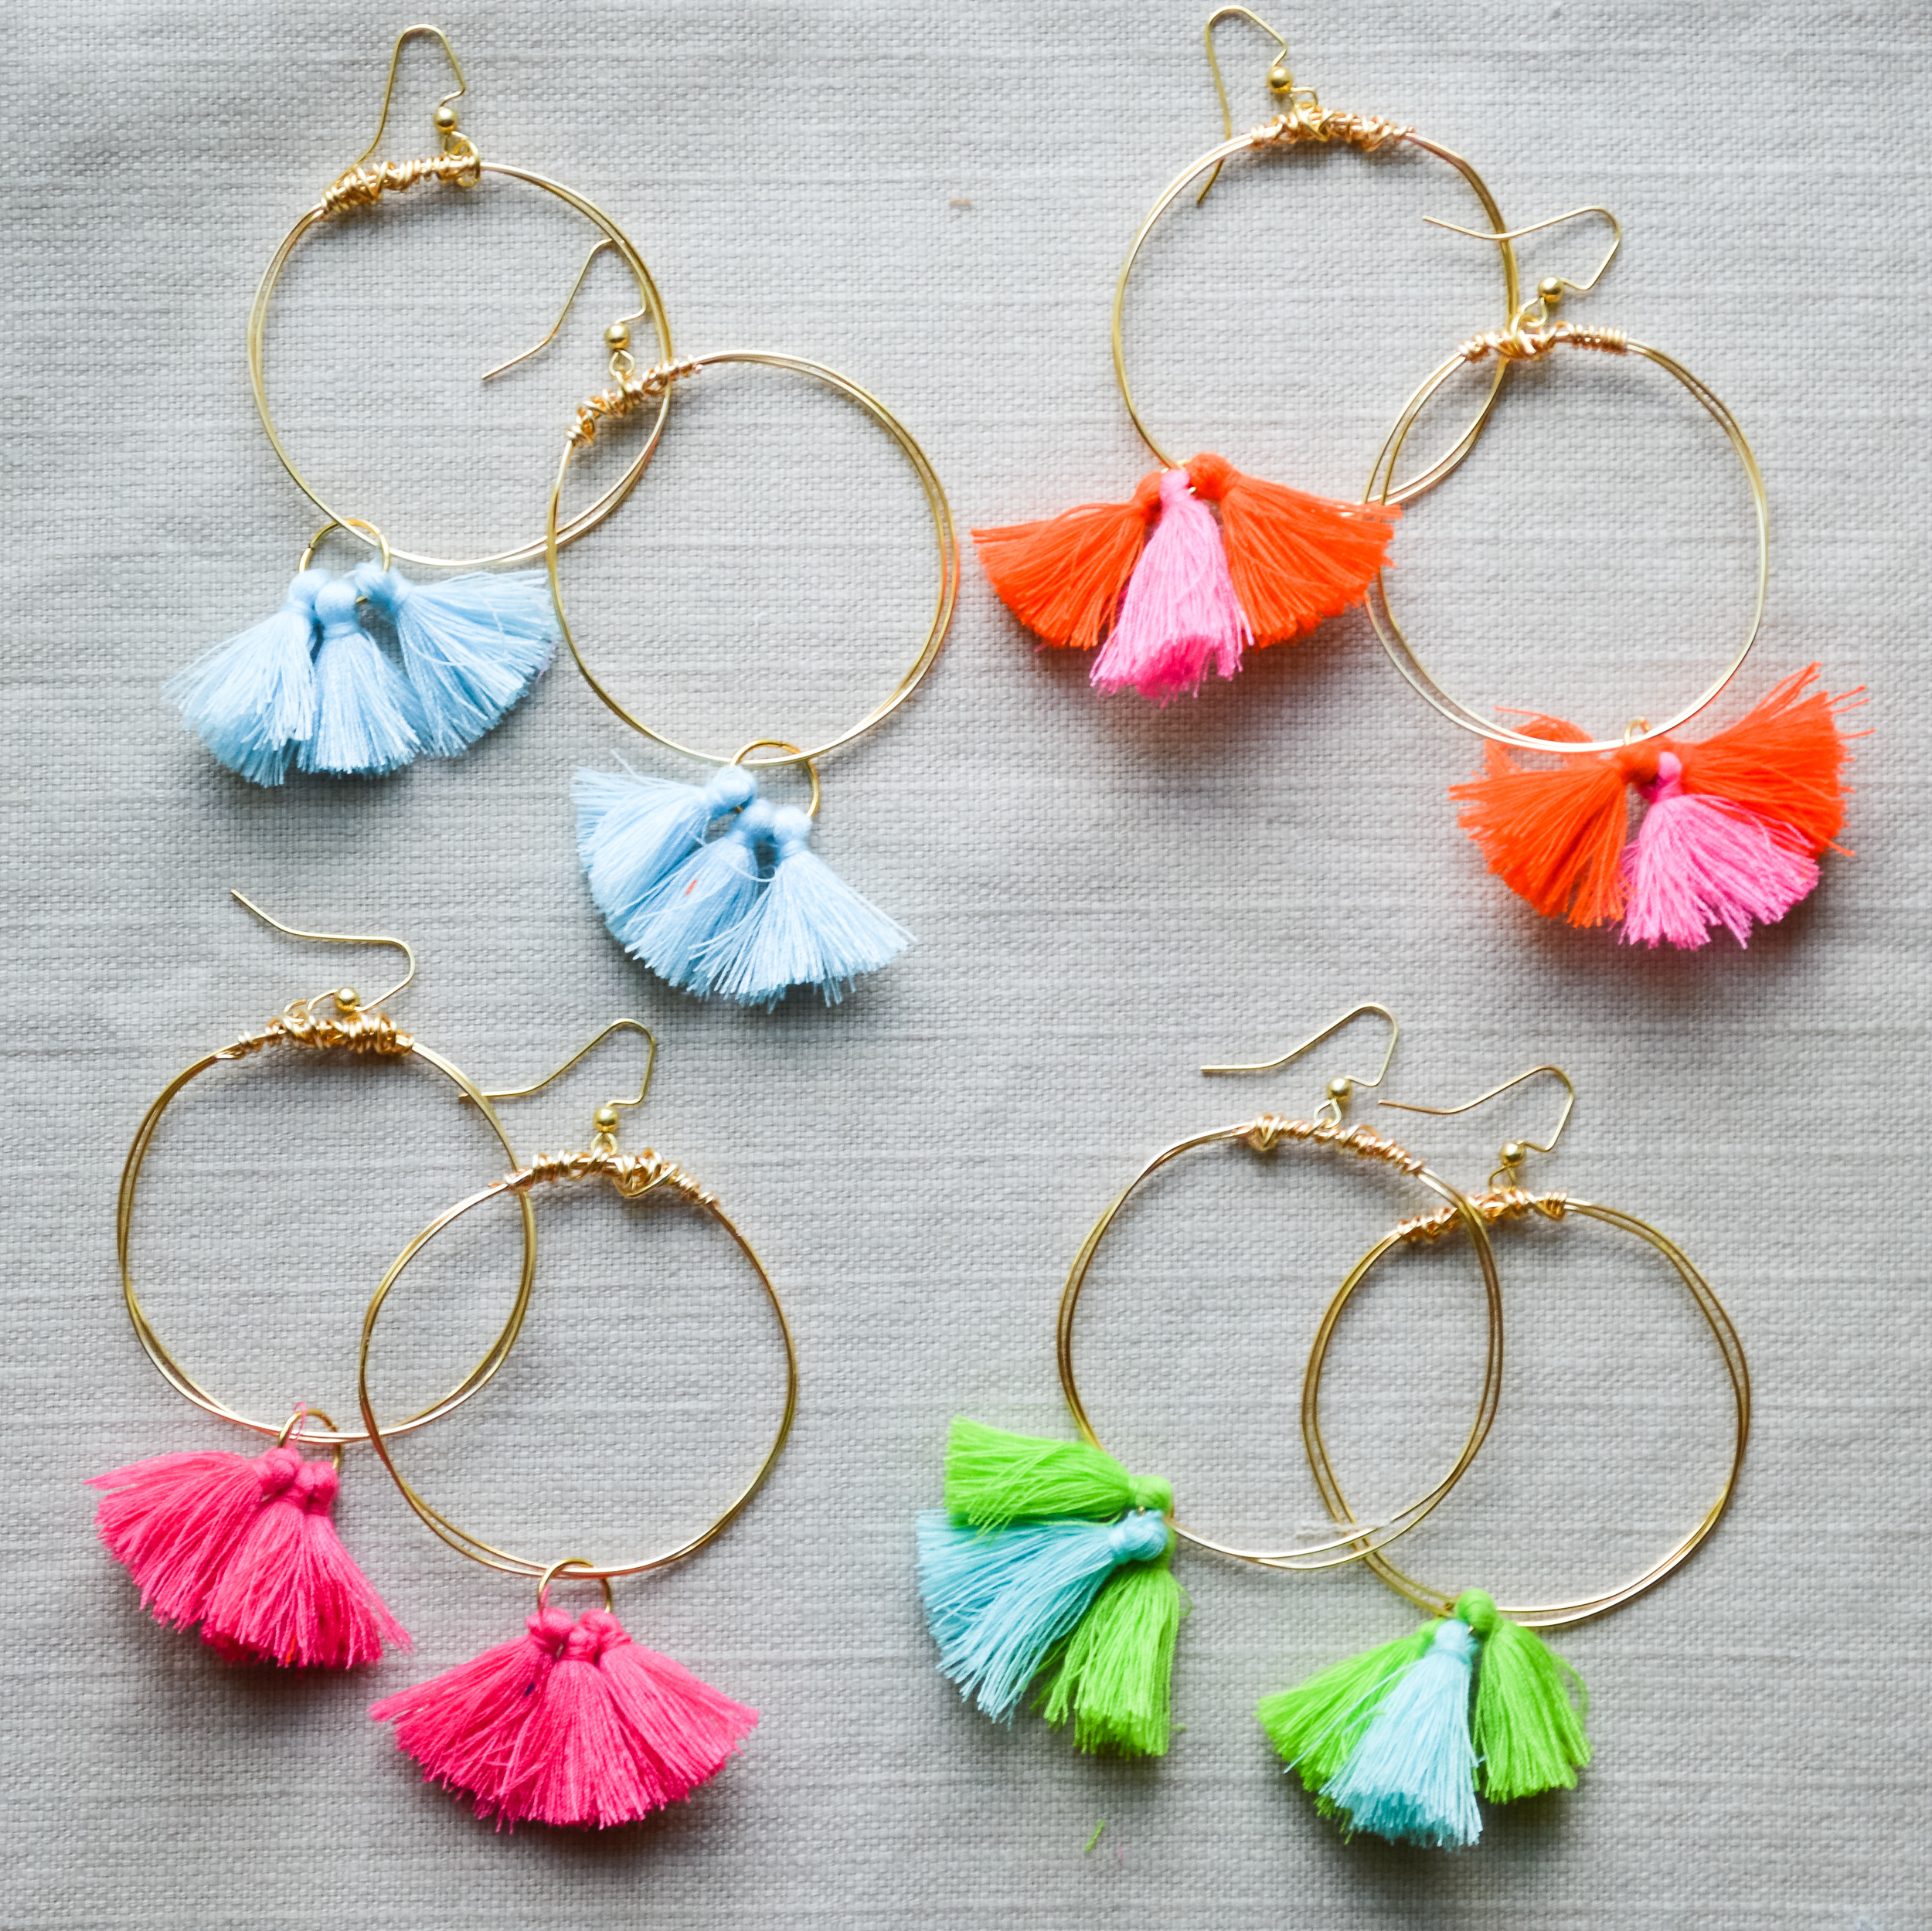 lcb_style_collection_accessories (29 of 34).jpg